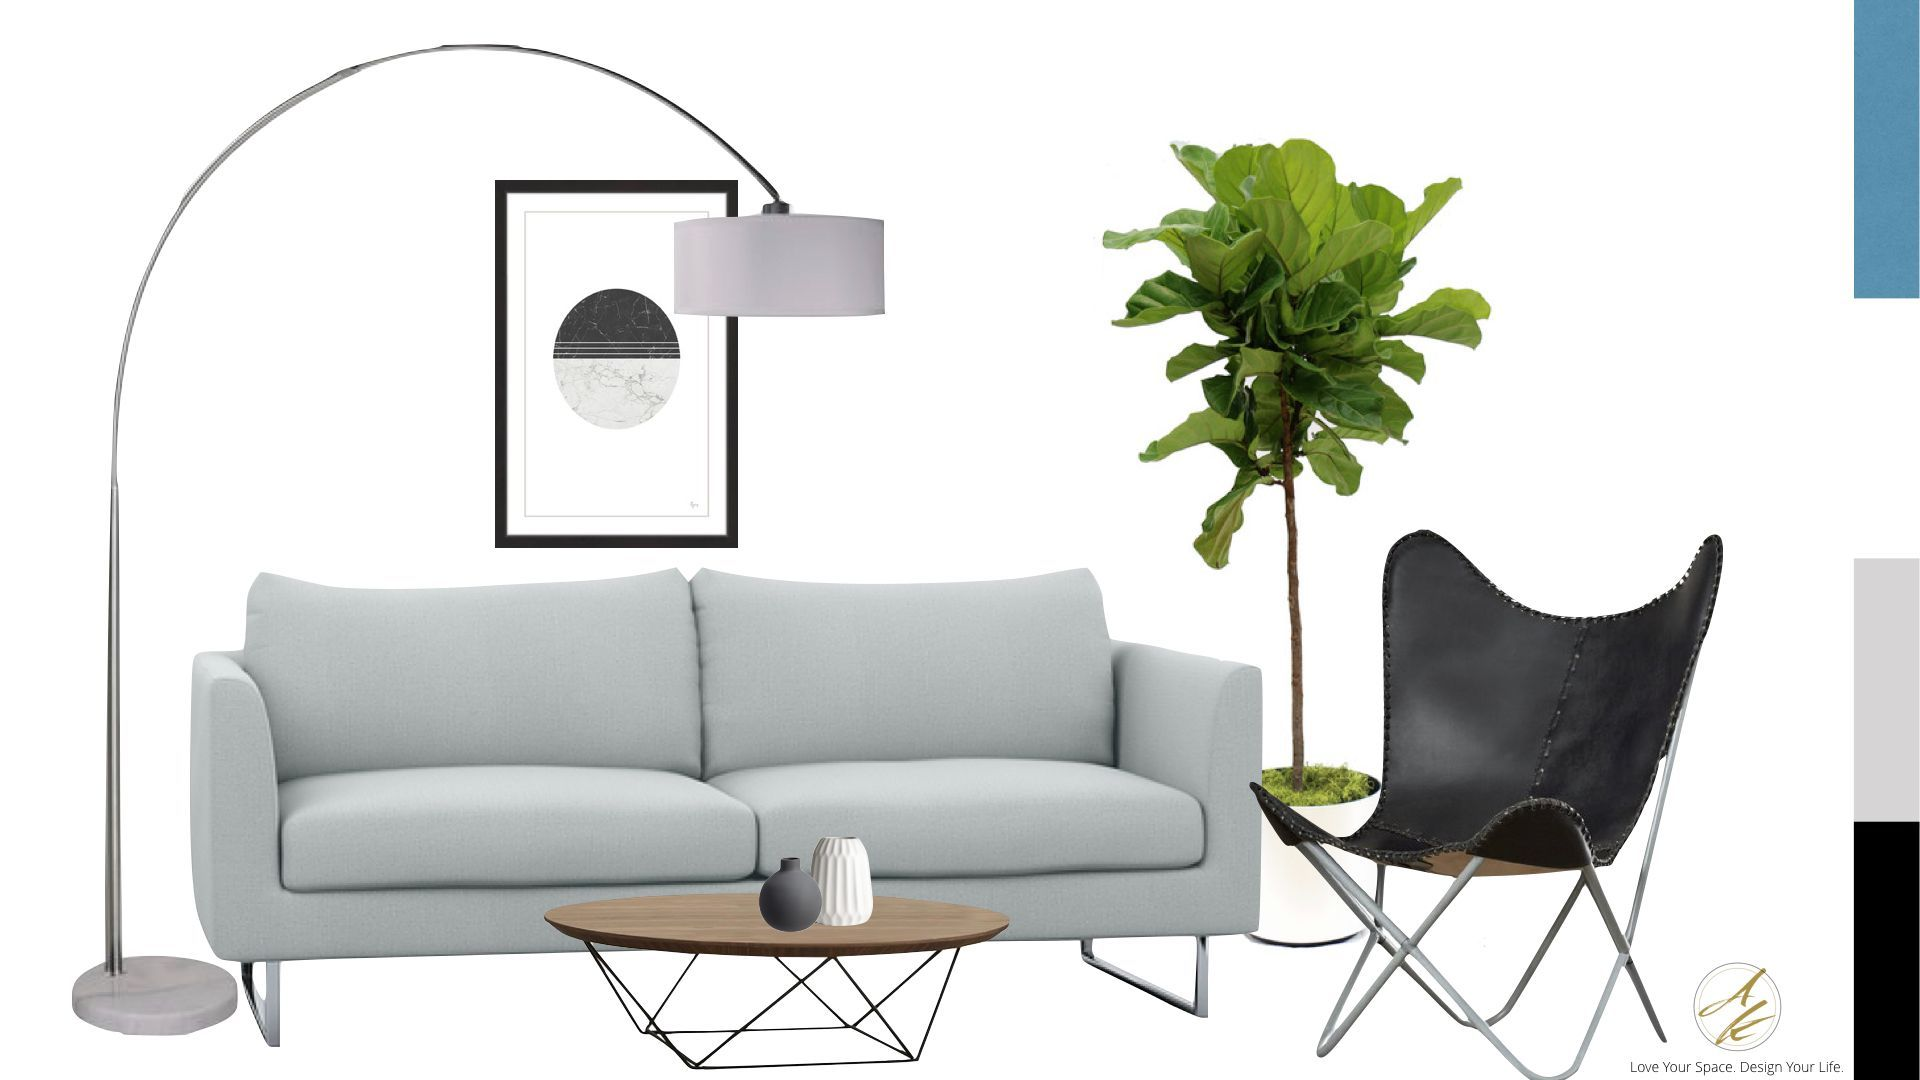 Whatu0027s Your Interior Design Style? Could You Be Curated Minimal? Take The  Albie Knows